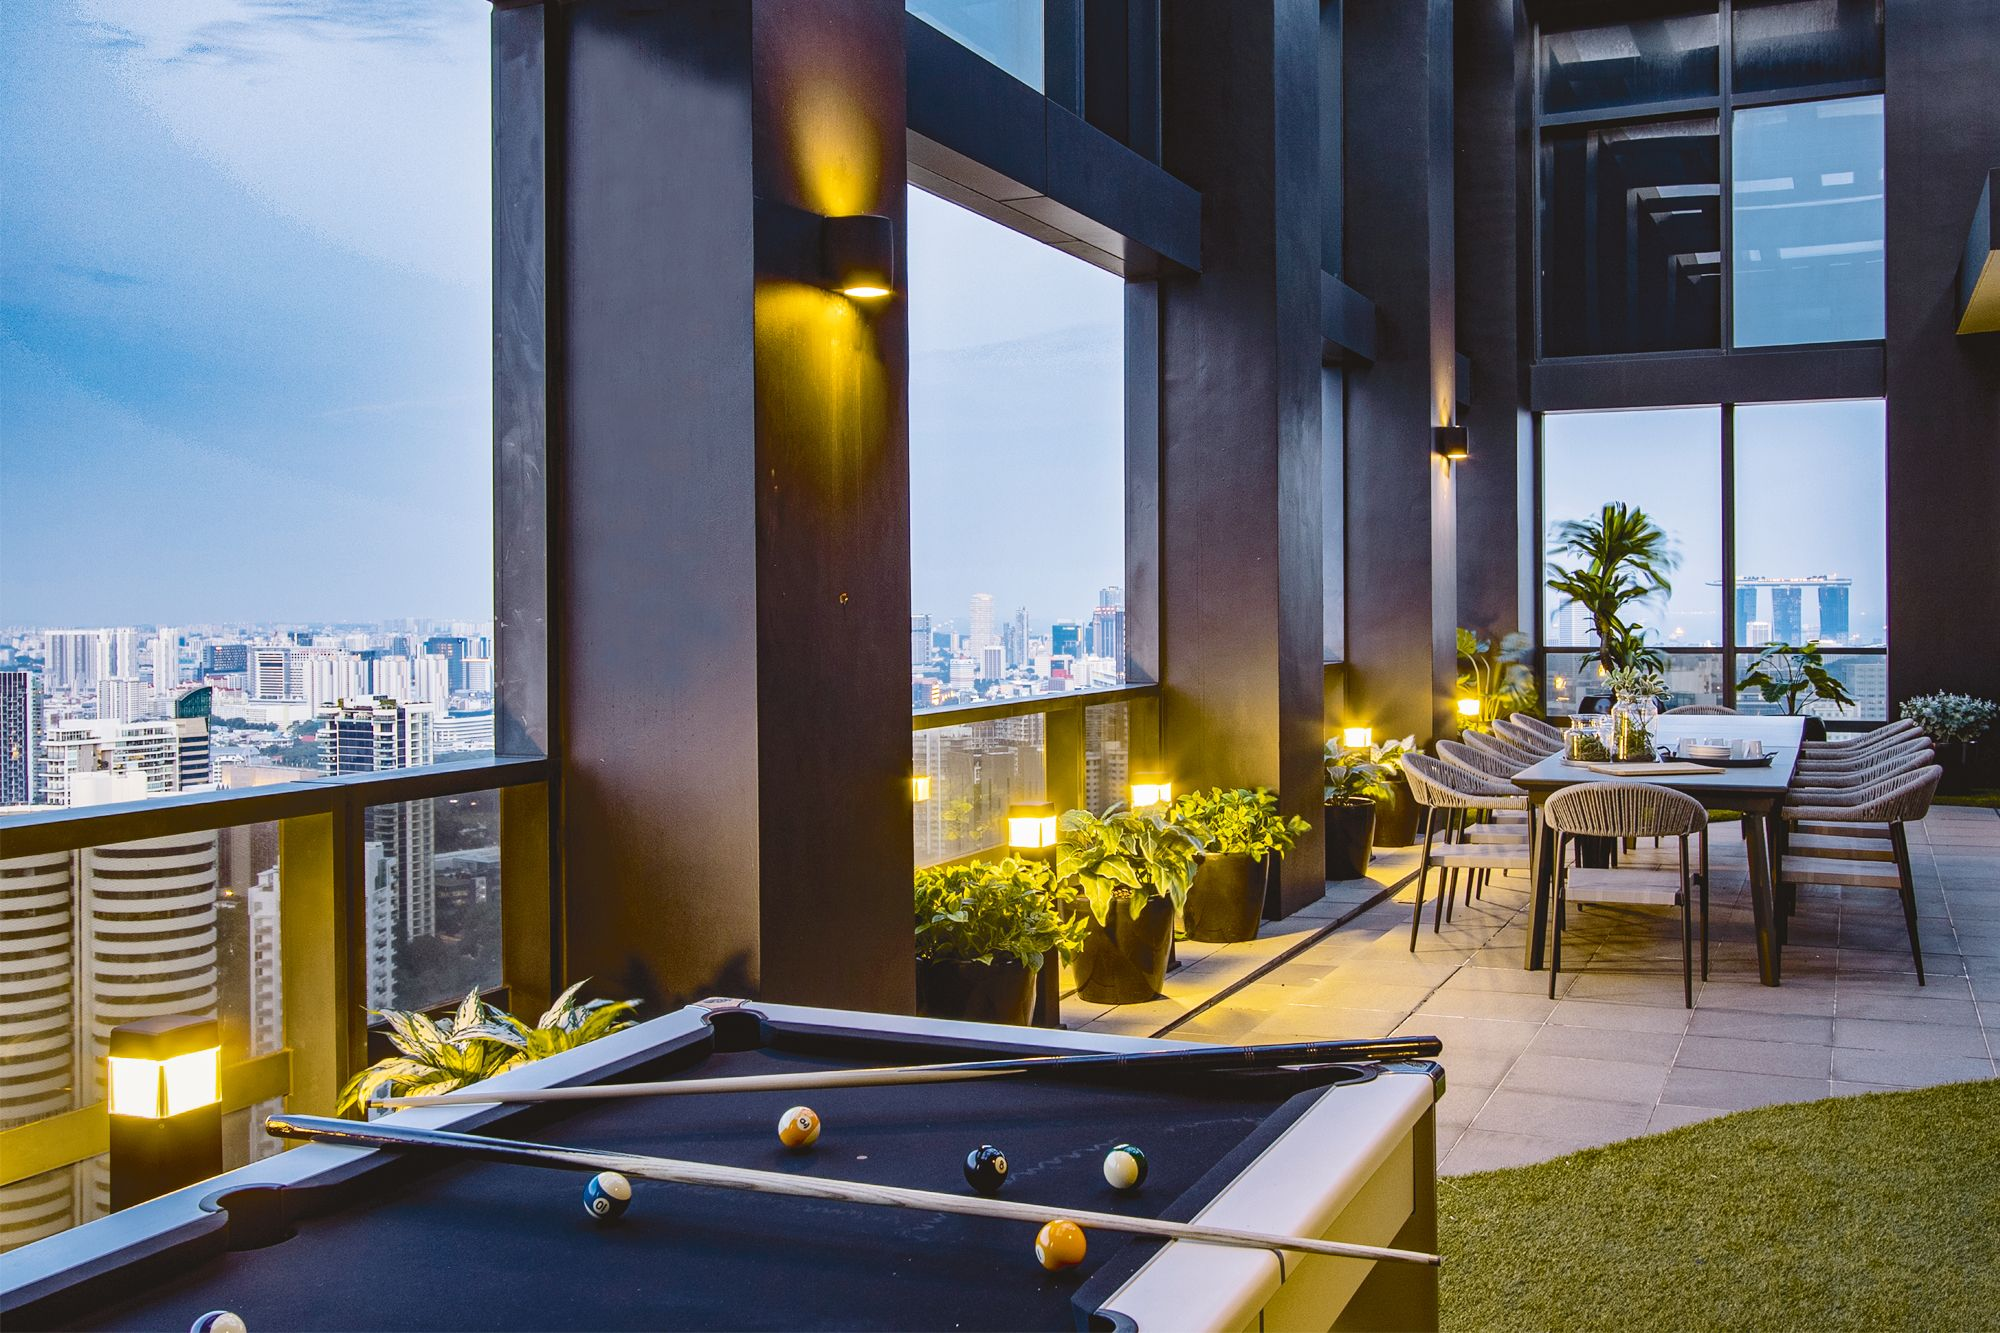 The spacious rooftop area features a twelve-seater outdoor dining set and a pool table